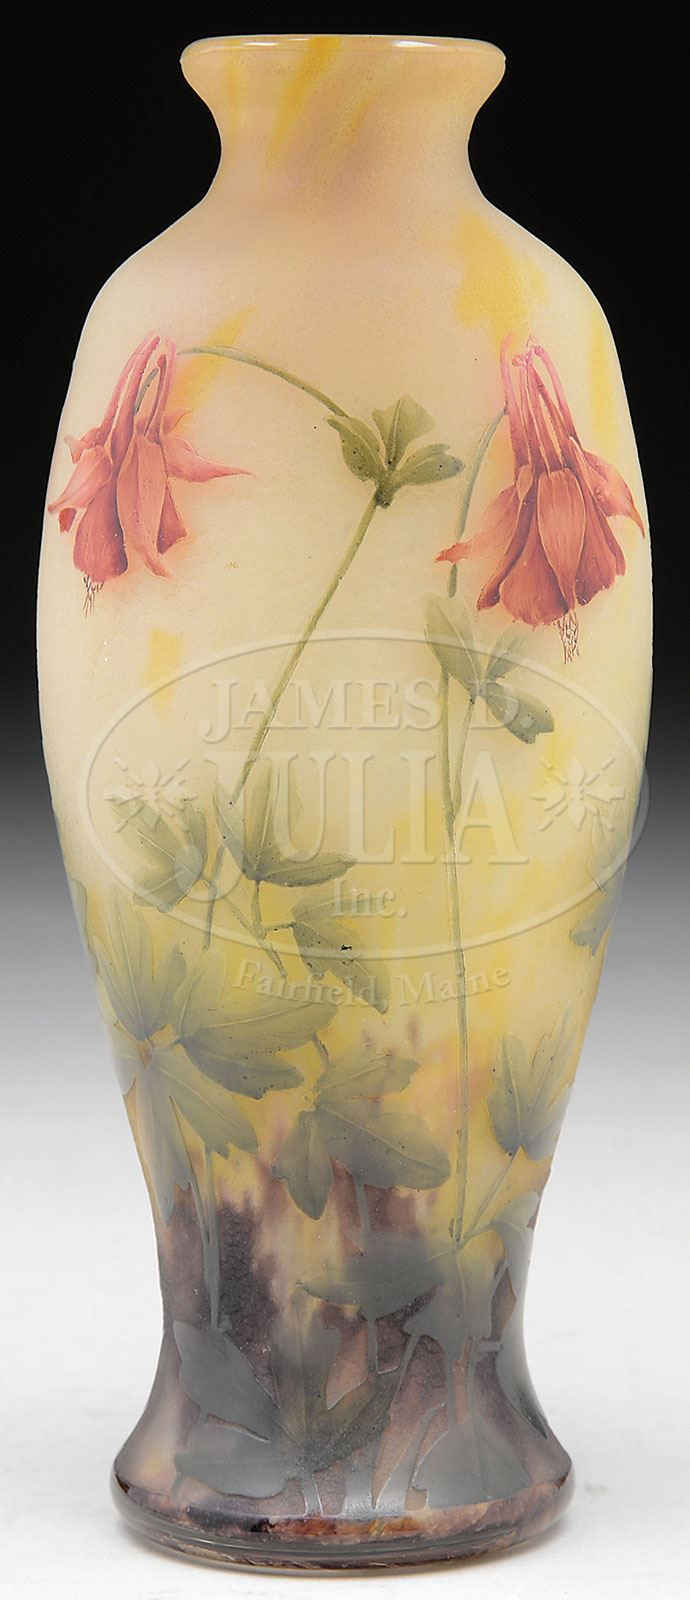 James D. Julia, Inc. - Daum Columbine Vase. Daum vase isdecorated with cameo Columbine flowers, stems and leaves against a lightly mottled creamy yellow background that shades to mottled brown at the bottom. Each of the flowers is beautifully enameledwith shades o green in the leaves and stems and lovely reds and oinks in the flowers